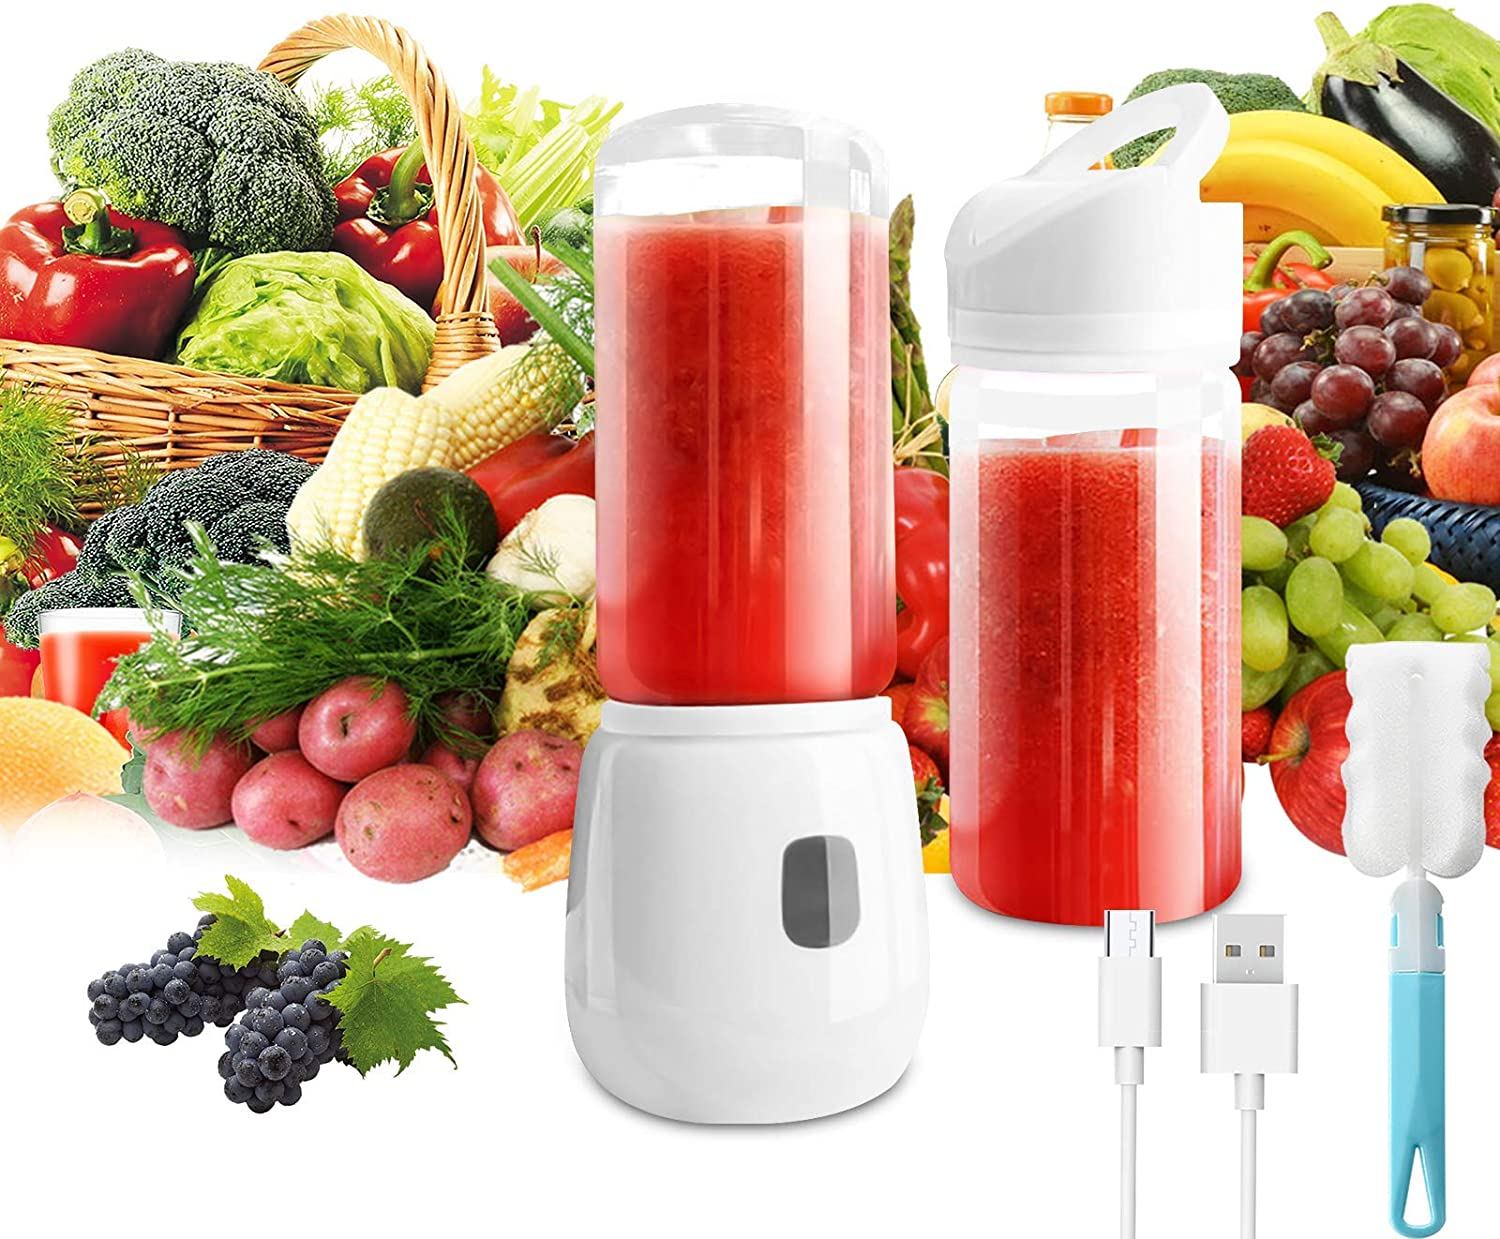 Blender 14 Oz, Mini Portable Blender USB Rechargeable, Personal Size Blender for Fruit, Juice, Milk Shakes and Smoothies (White)